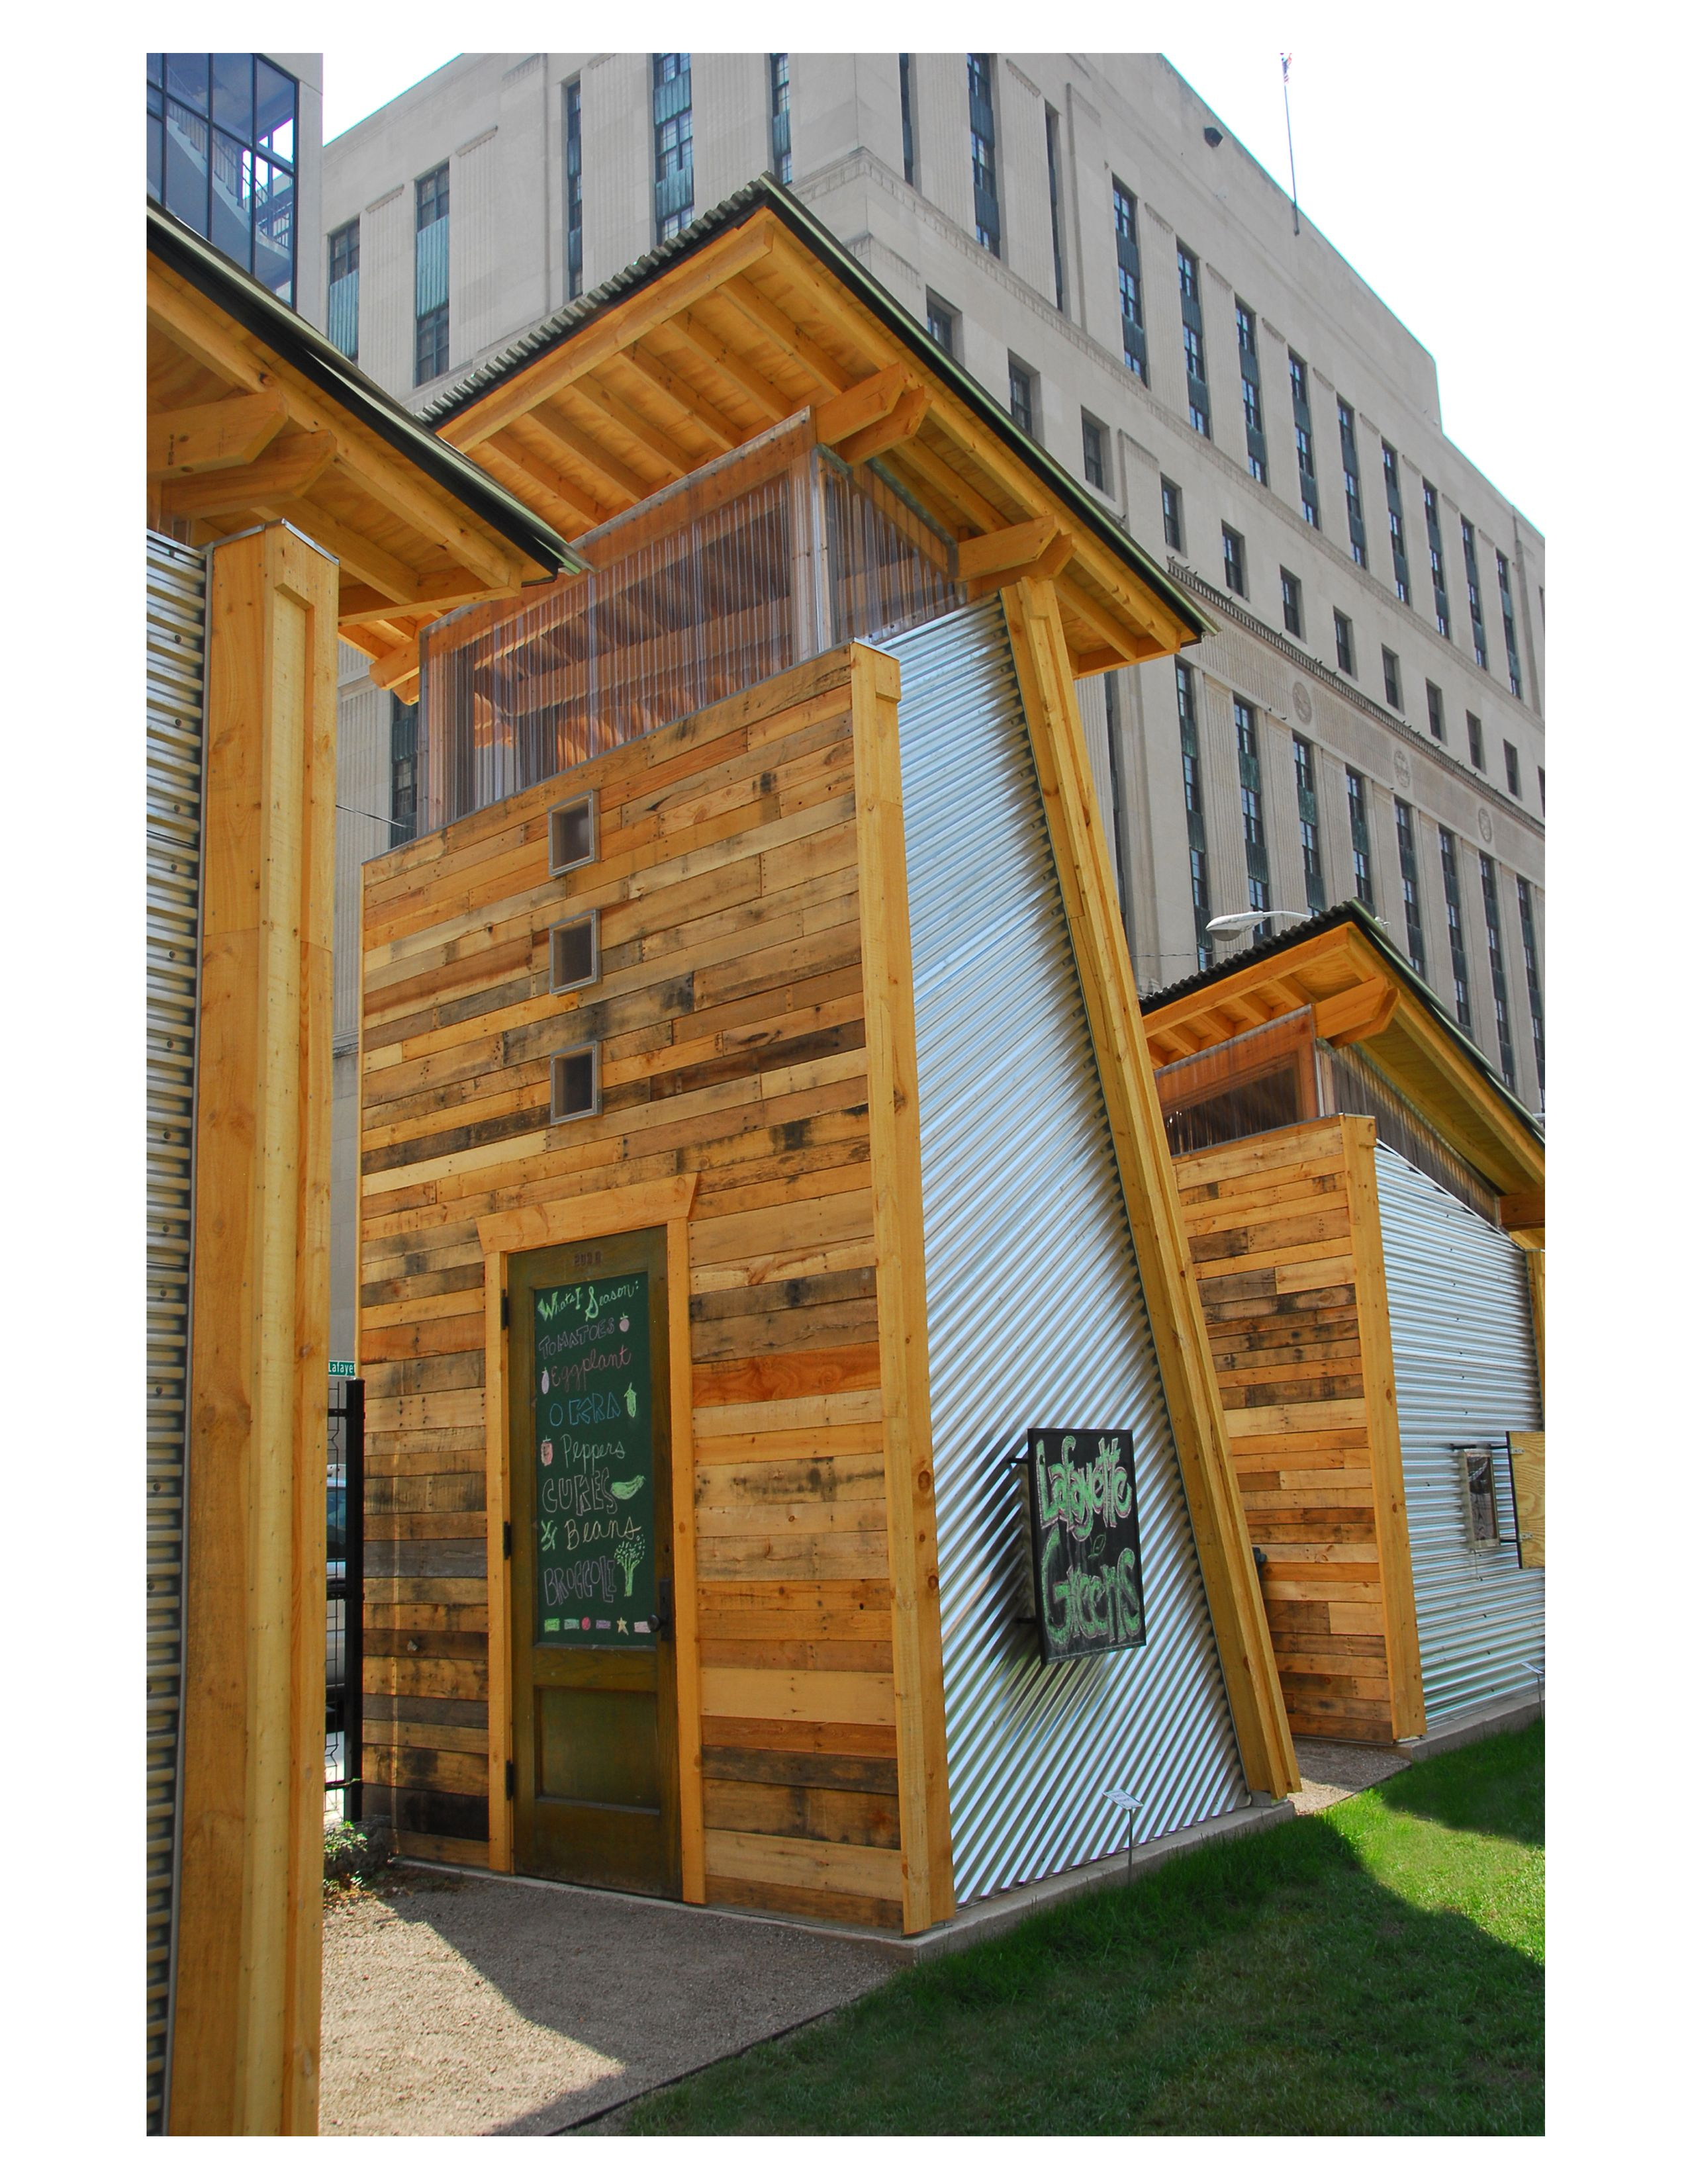 Wood Pallet House Garden Shed Made Out Of Recycled Pallets O Pallet Ideas Pallet